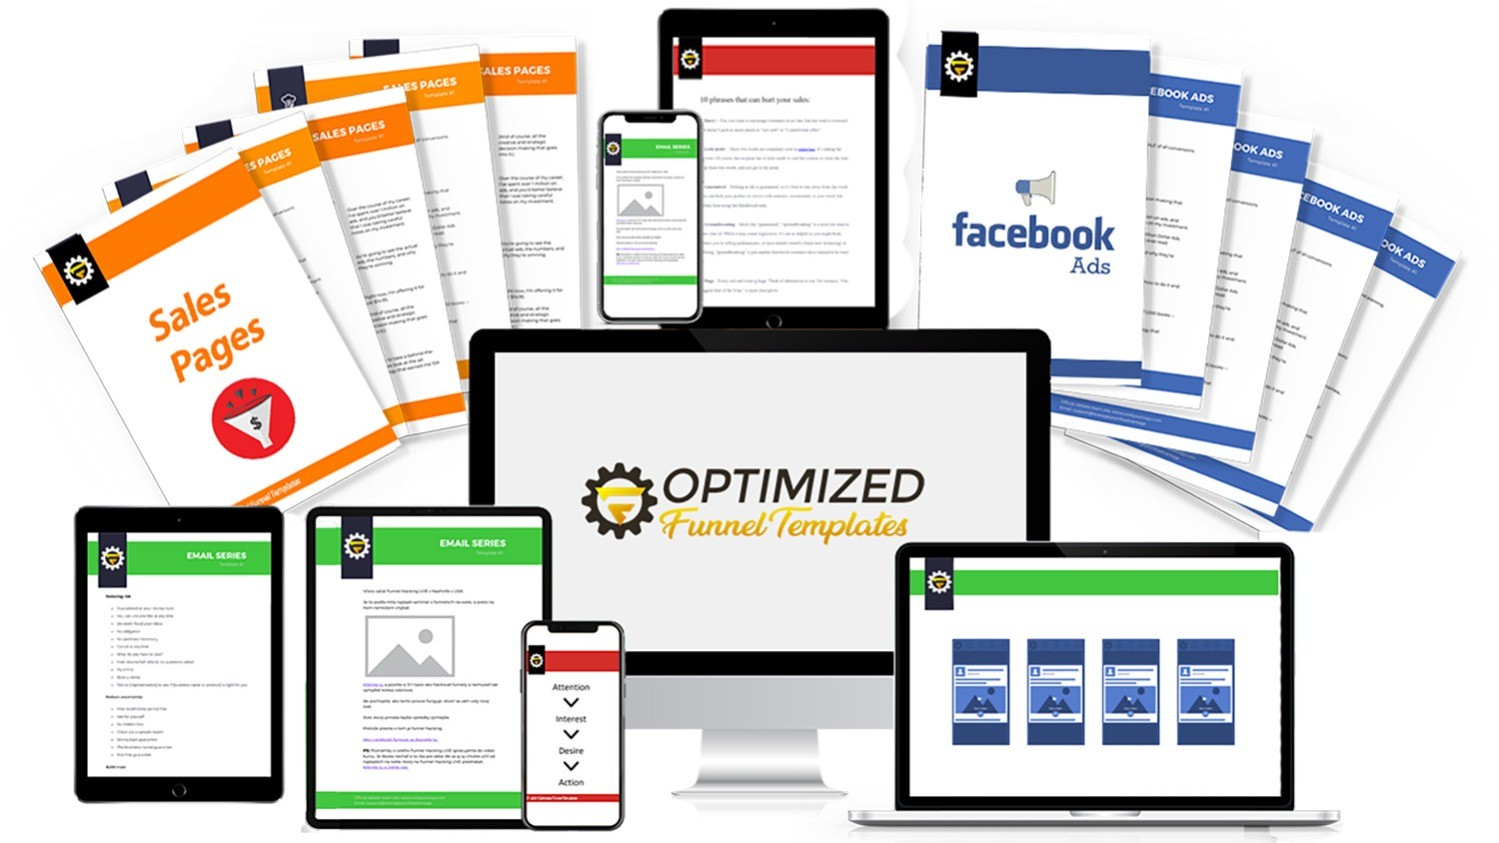 AppSumo Deal for Optimized Funnel Templates